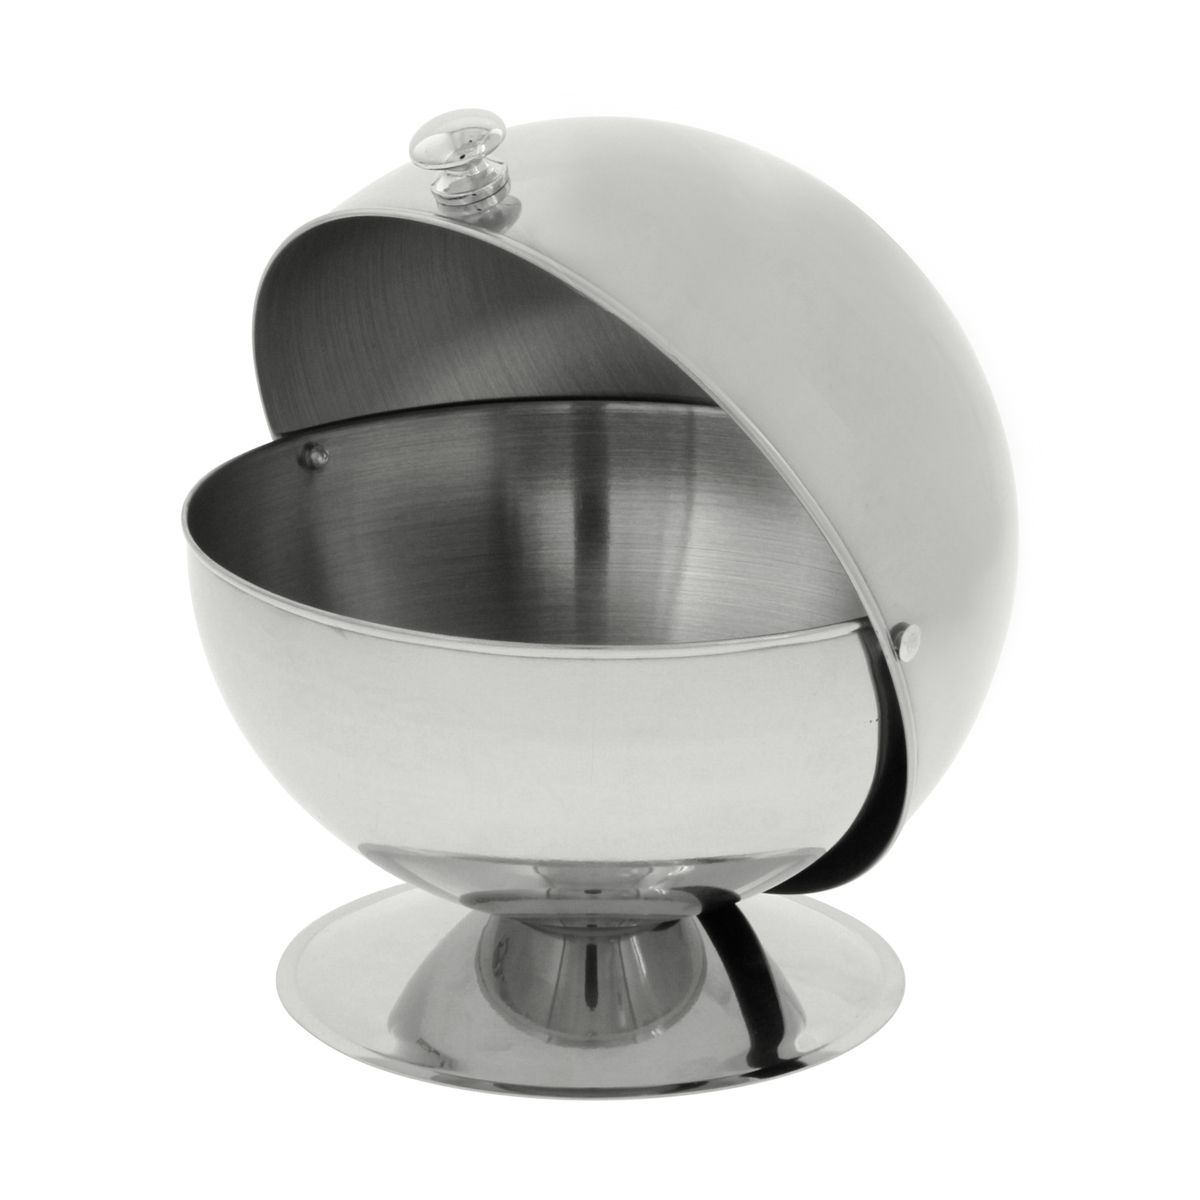 SUCRIER BOULE BISTROT 14 CM INOX - CHEVALIER DIFFUSION